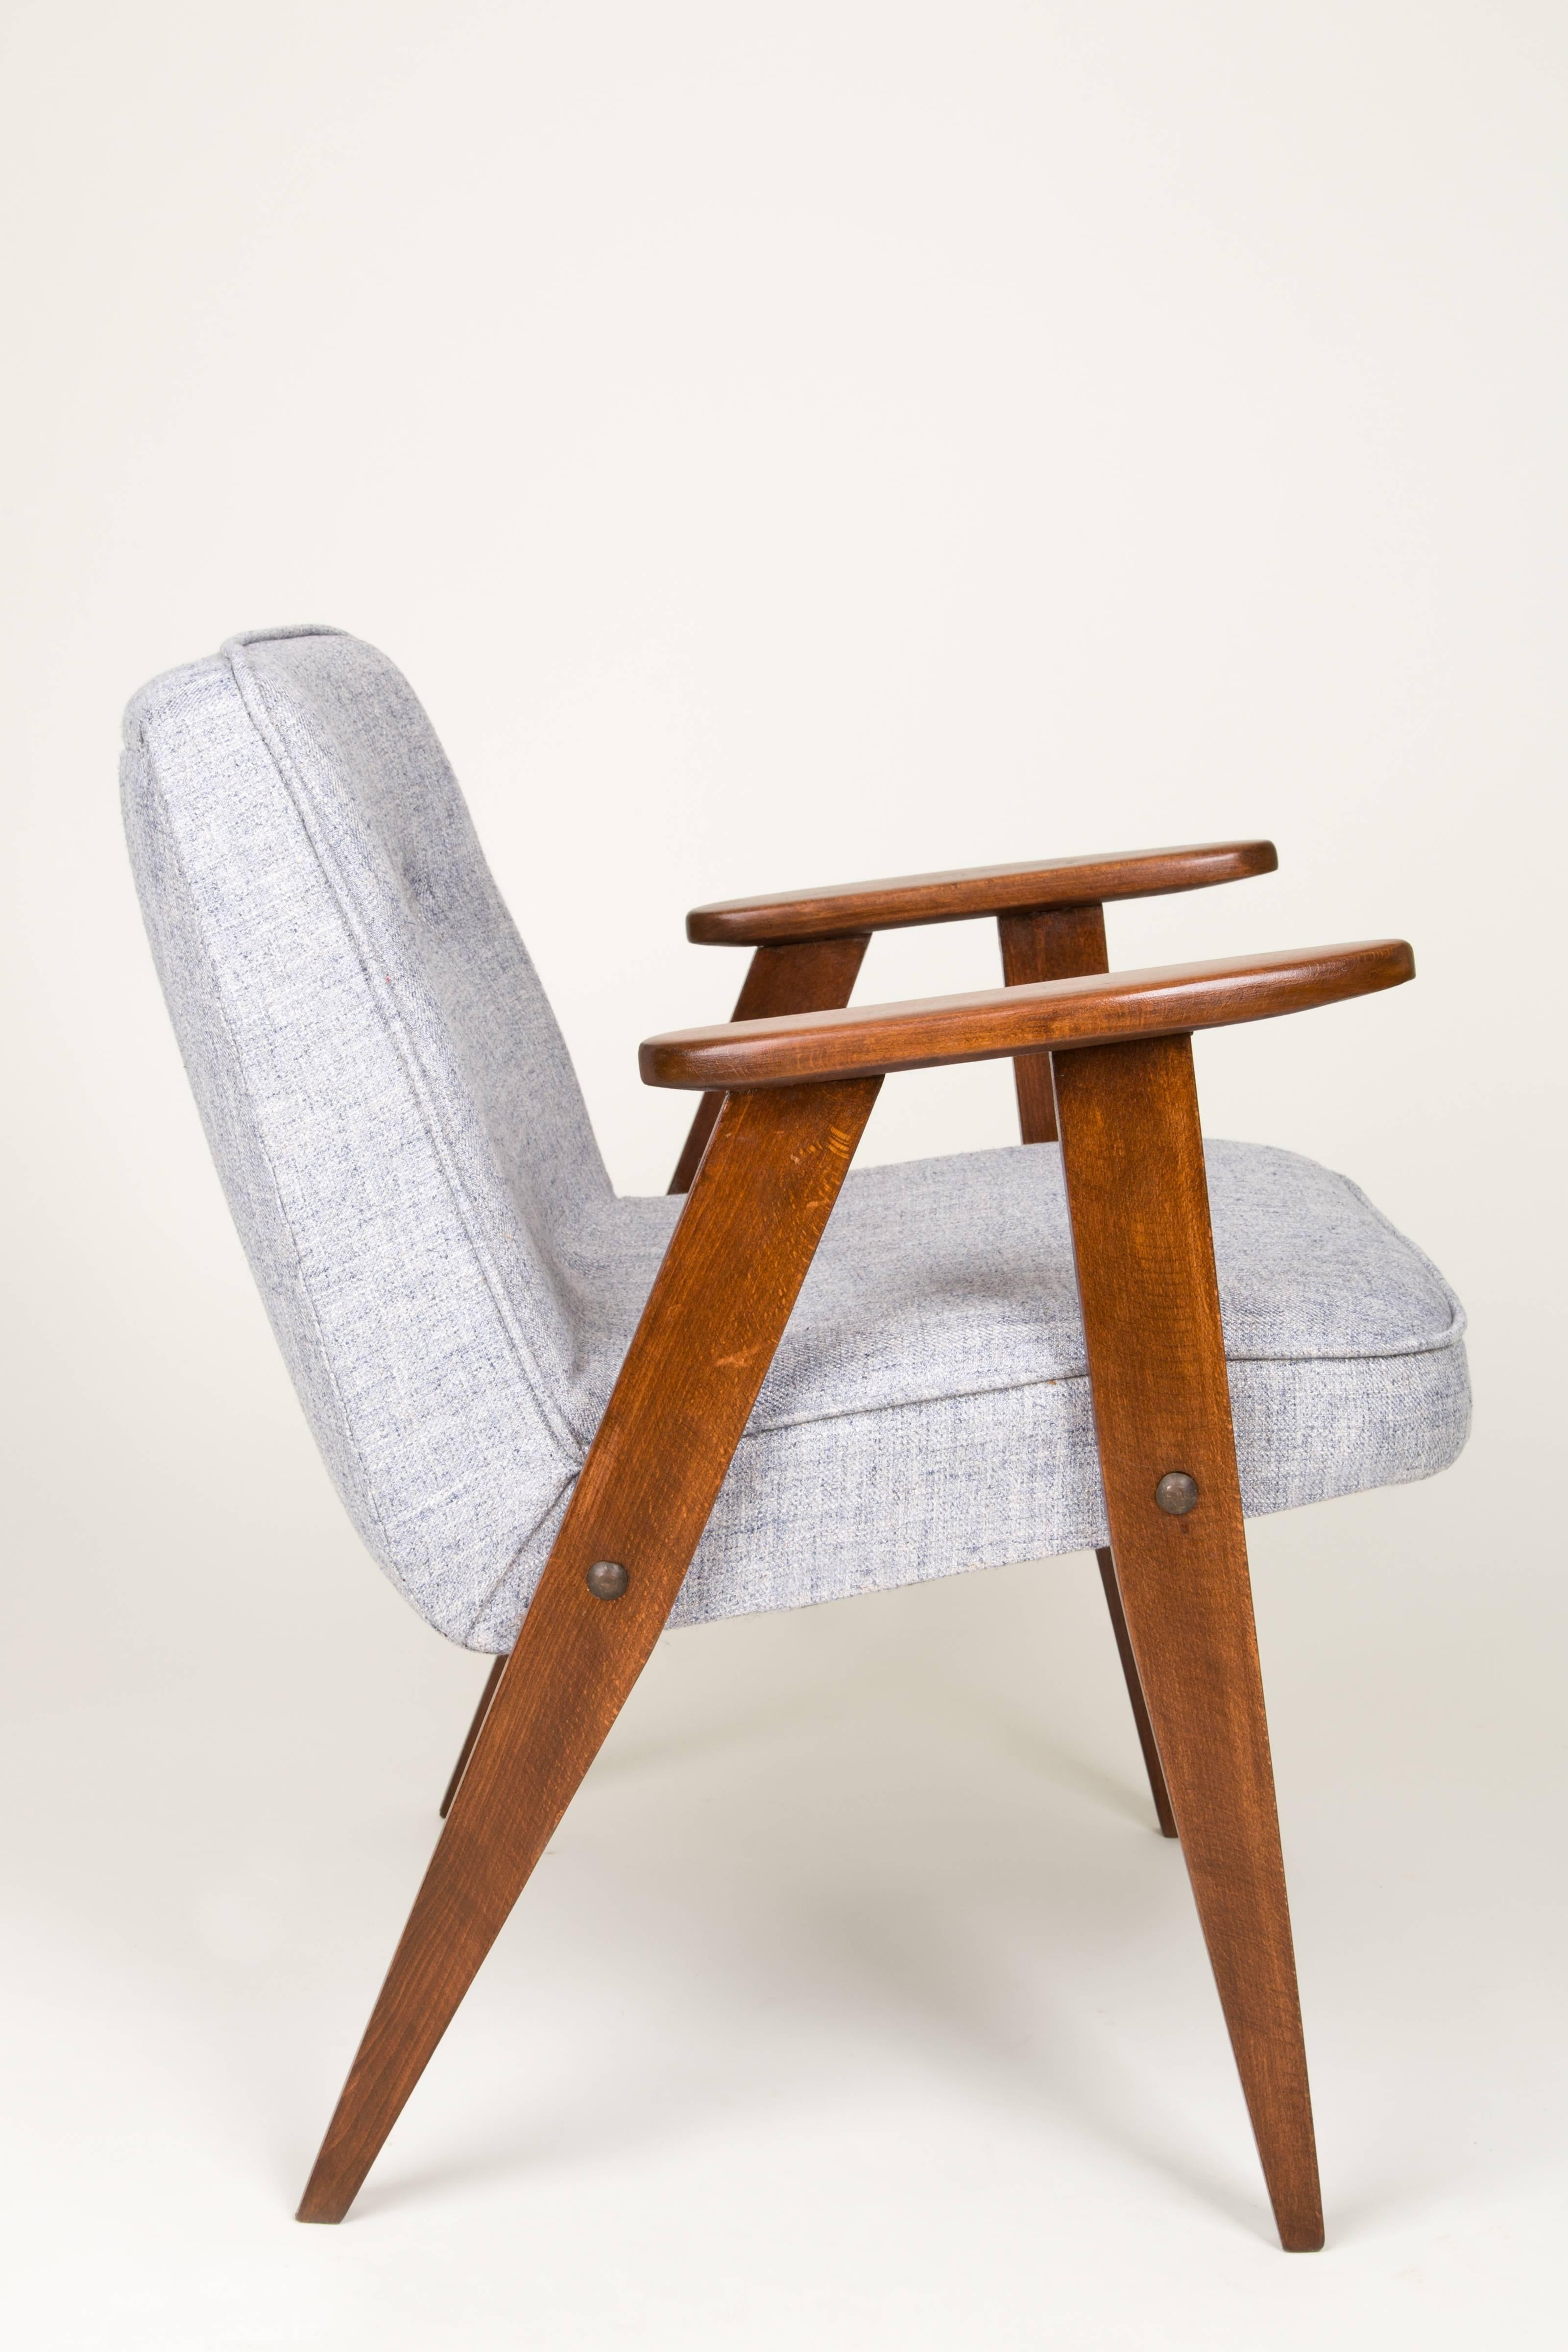 Famous Chair 366 Armchair Jozef Chierowski 1960s